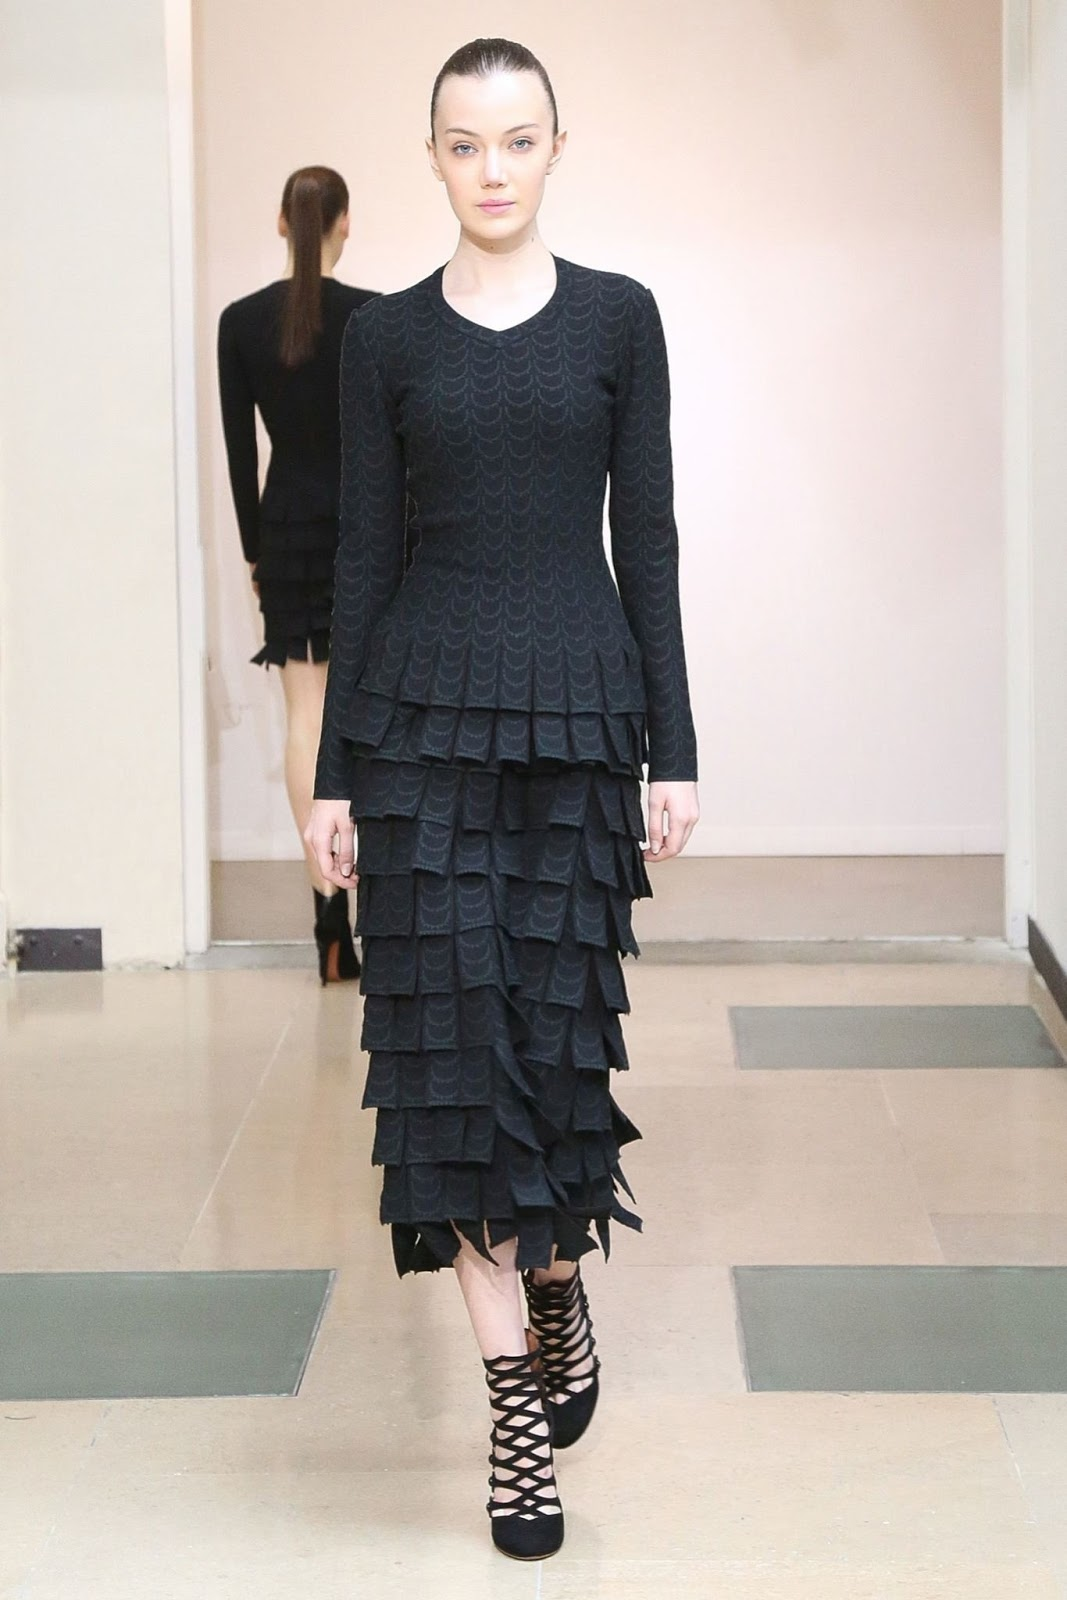 Azzedine Alaia Fall 2015 collection look book / fashioned by love